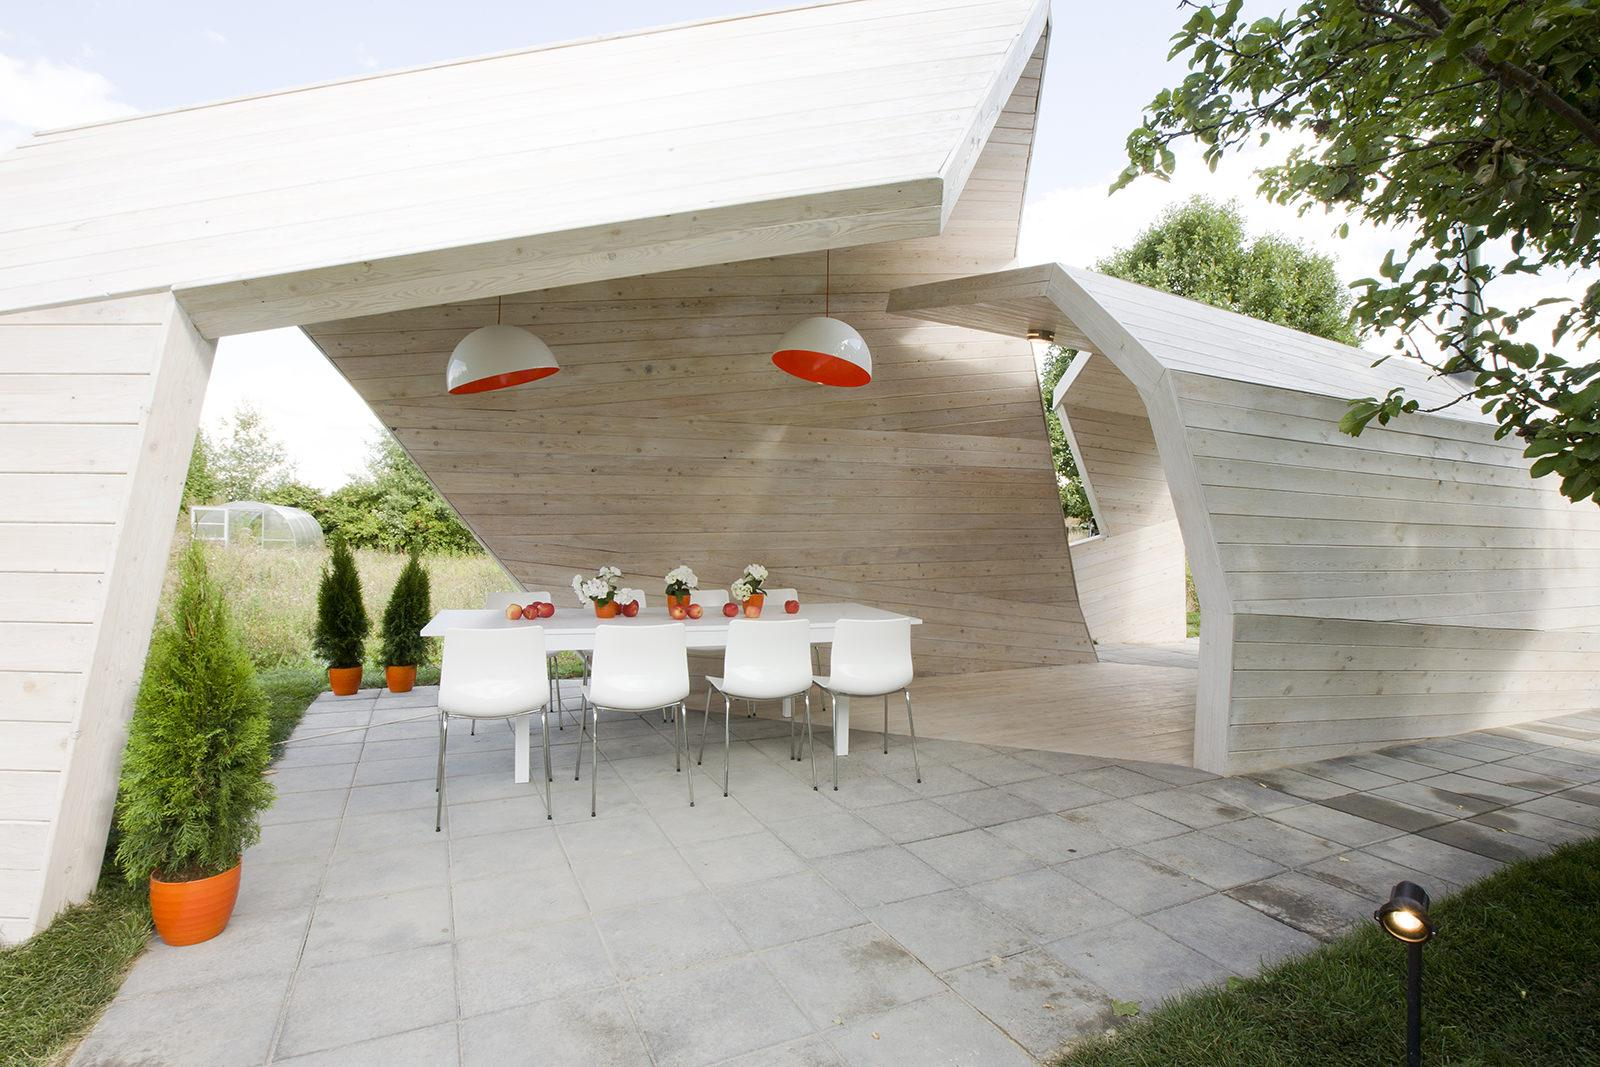 A stylish white gazebo made of wood